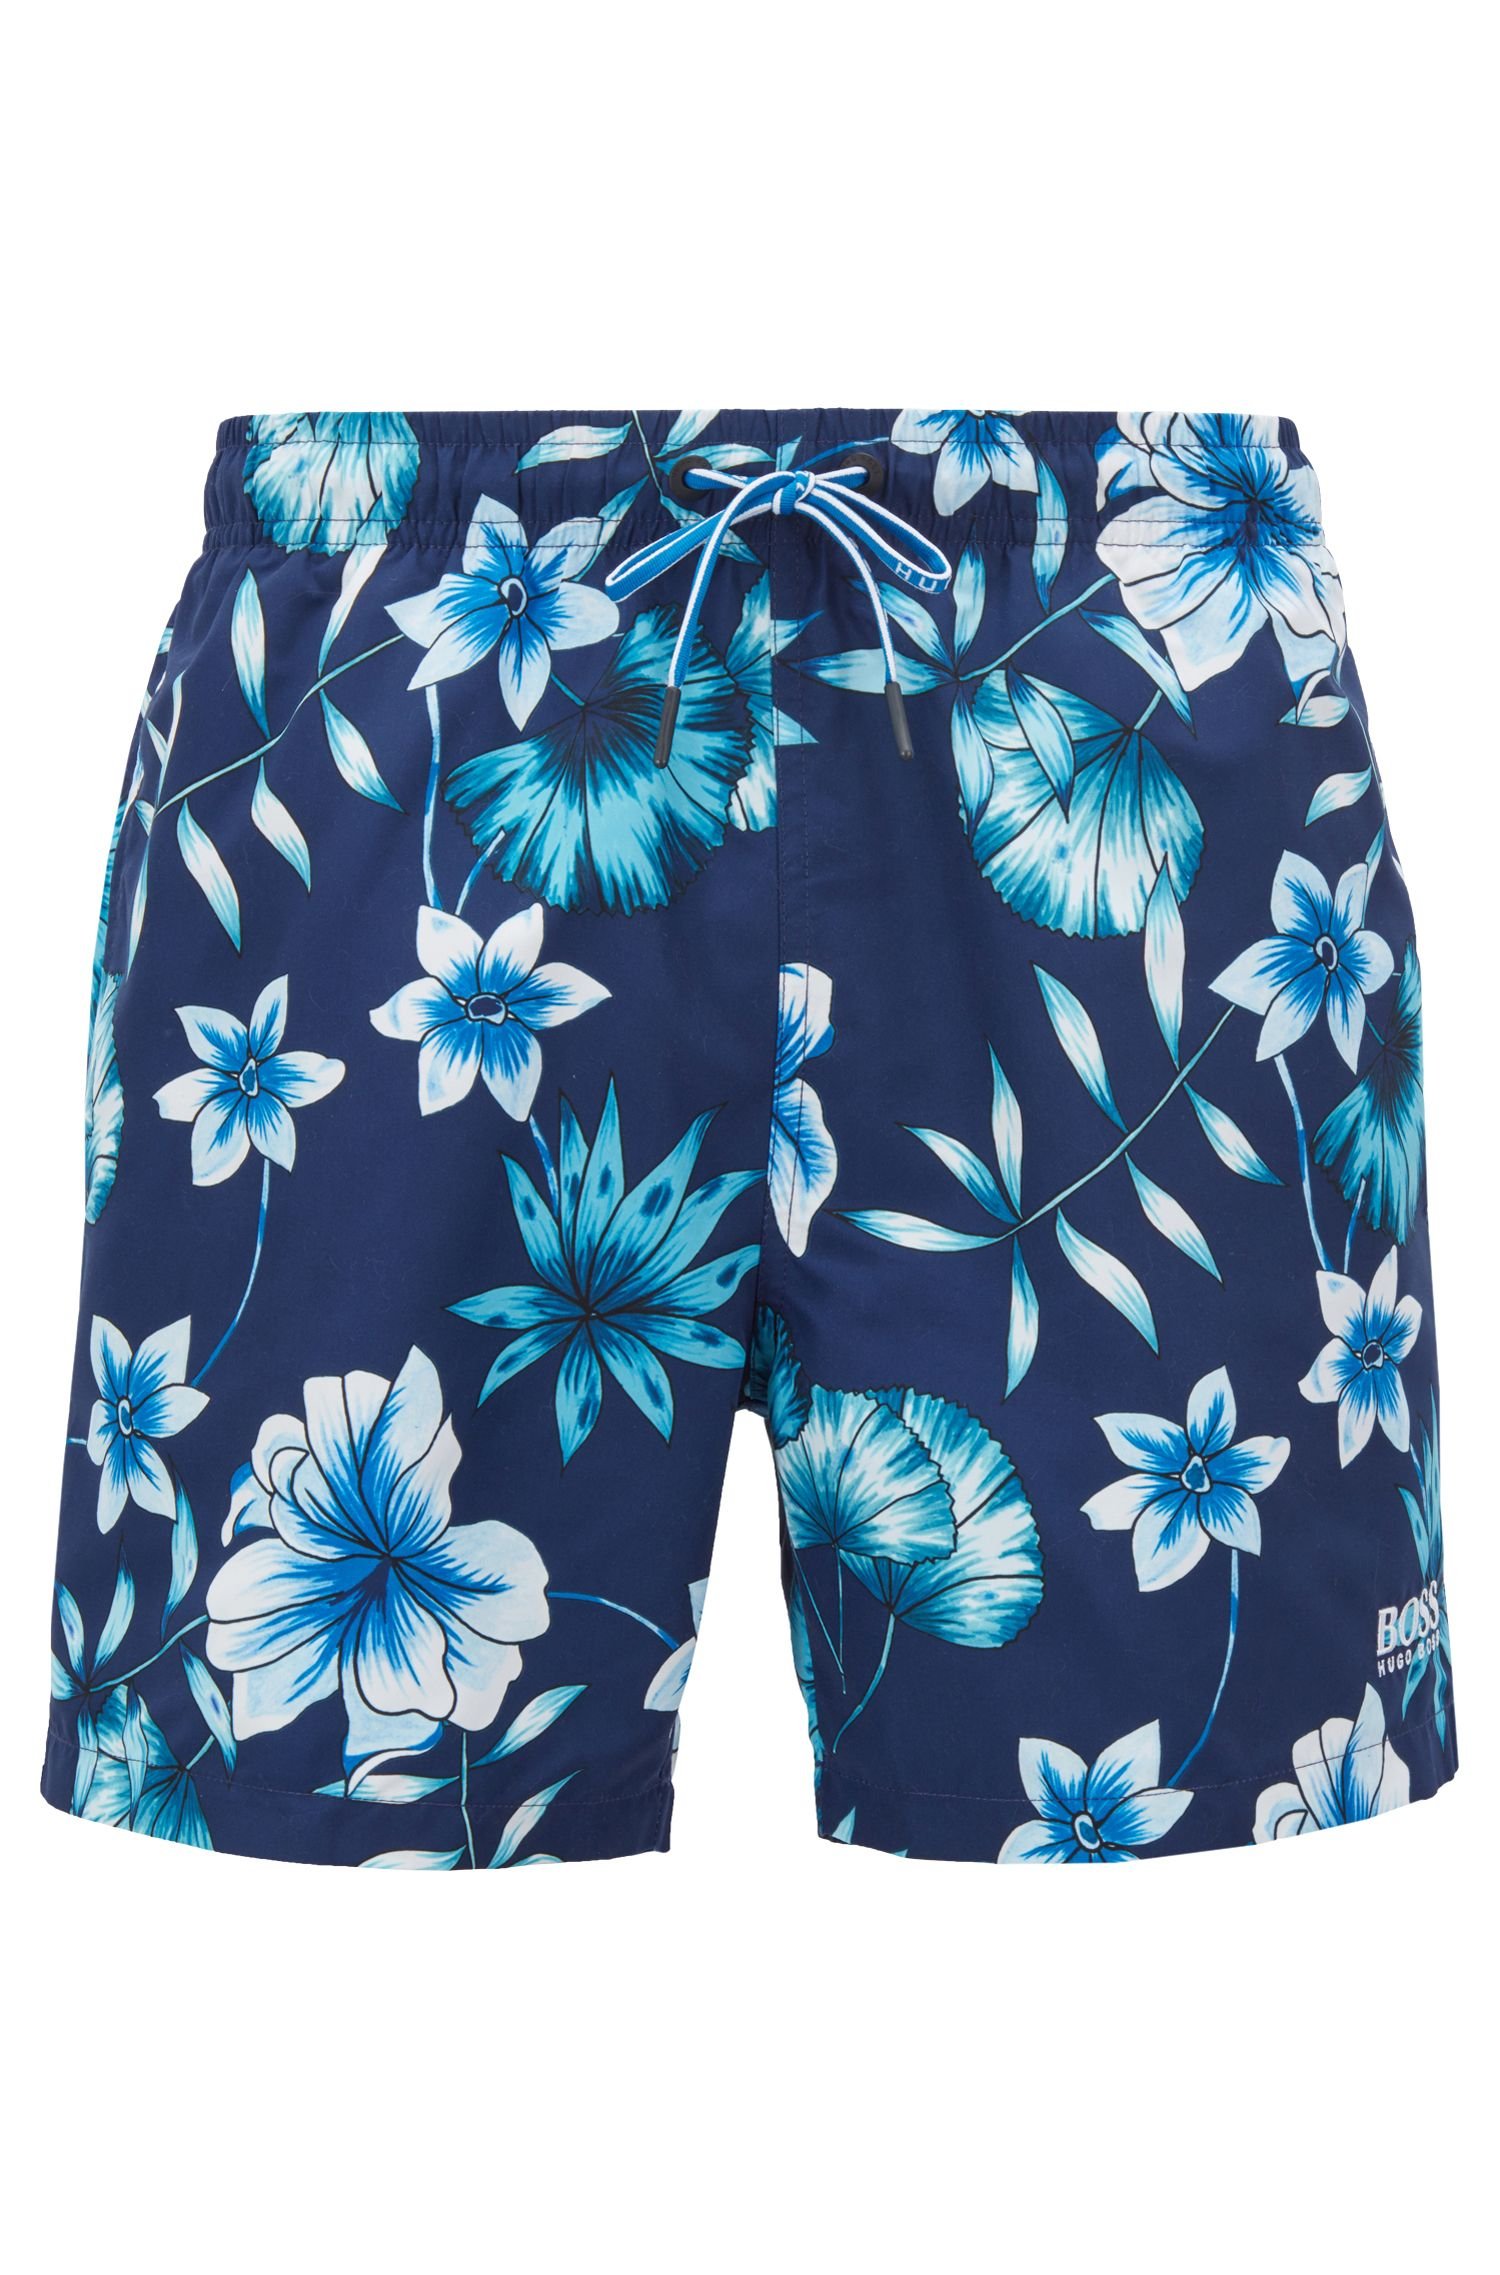 Floral-print swim shorts in quick-drying technical fabric